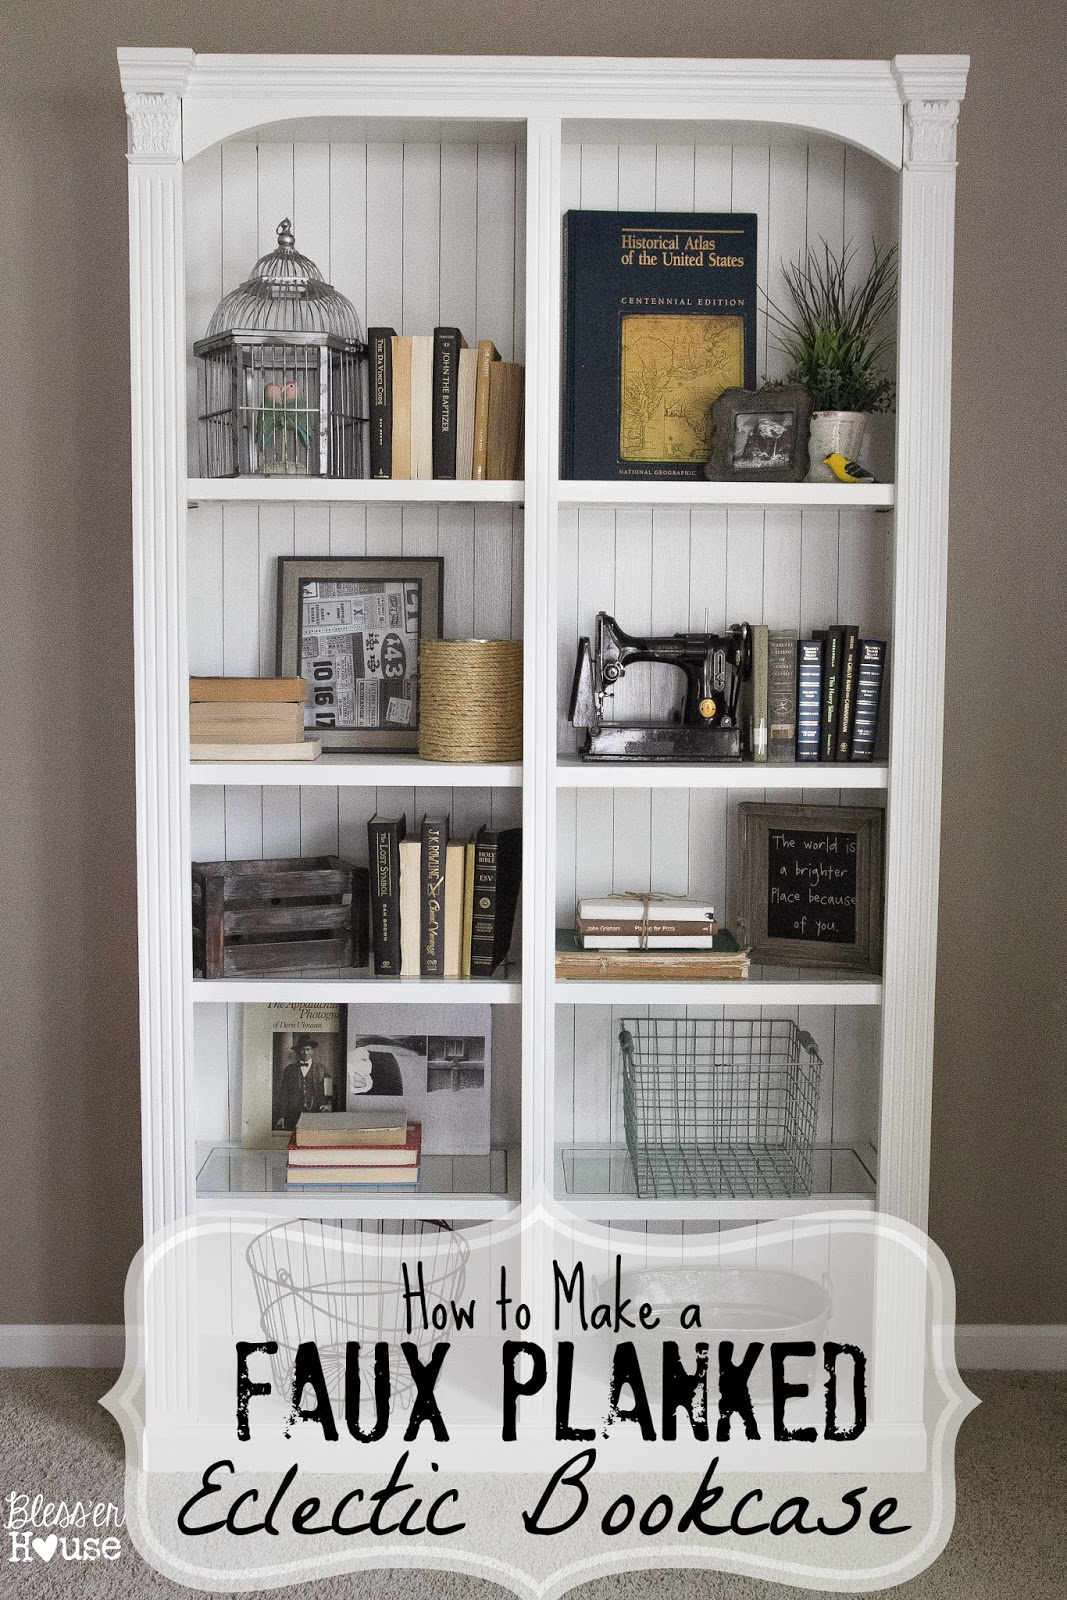 How to make a faux planked eclectic bookcase bless 39 er house - What did the wall say to the bookcase ...